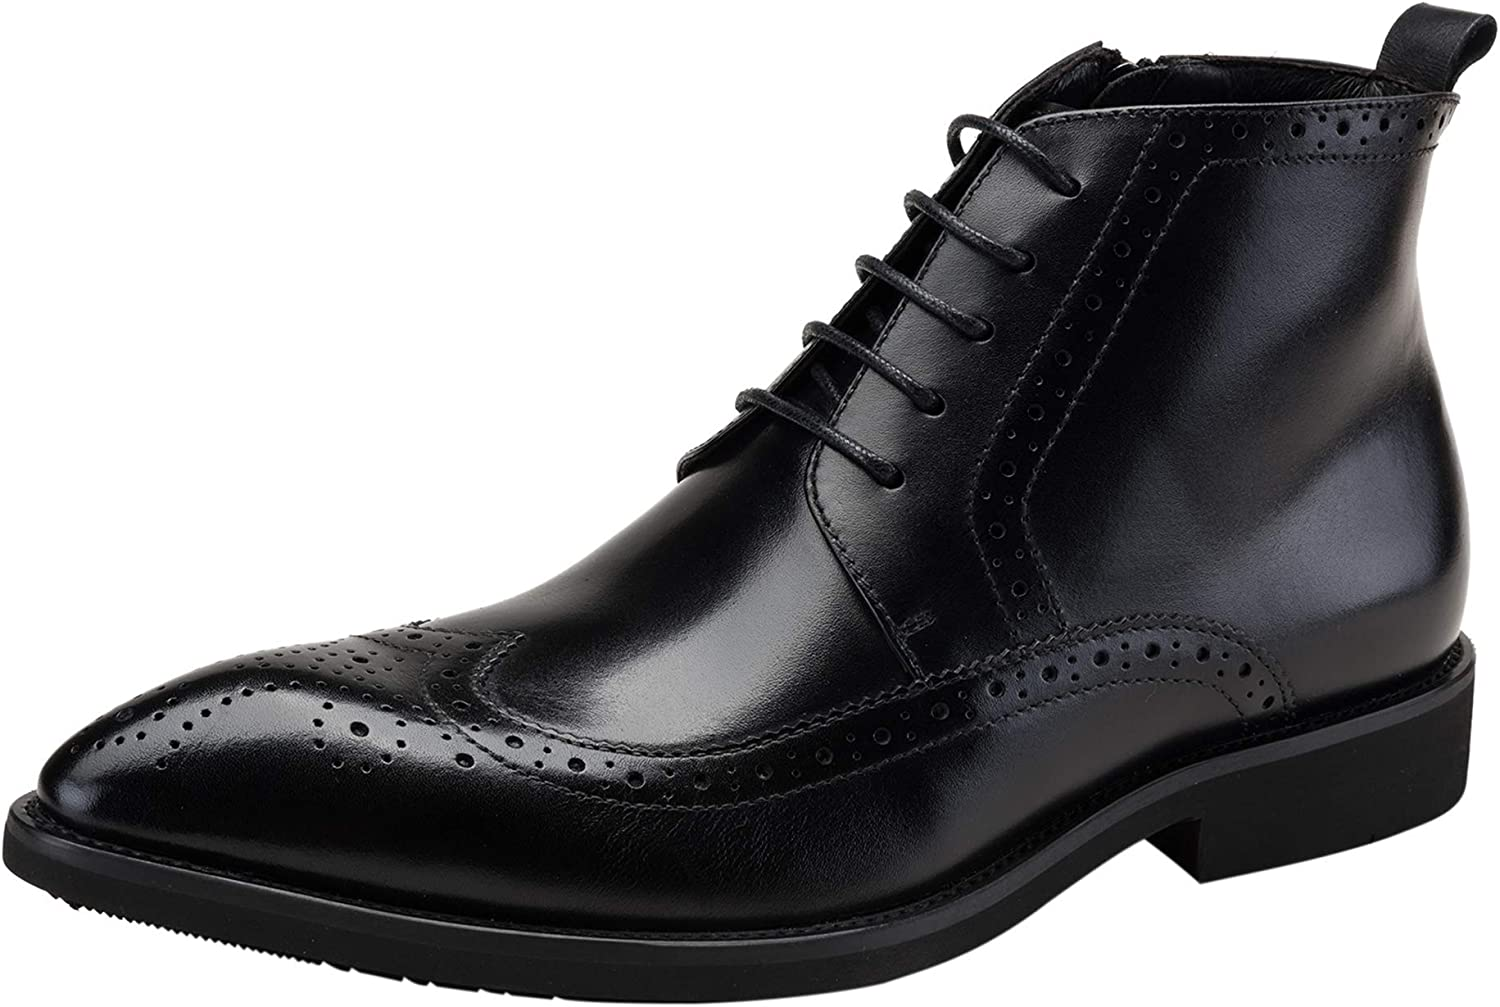 Men Genuine Leather Oxford Lace up Classic Brogue Wingtip Zip Ankle Dress Business Chukka Boots Black Burgundy